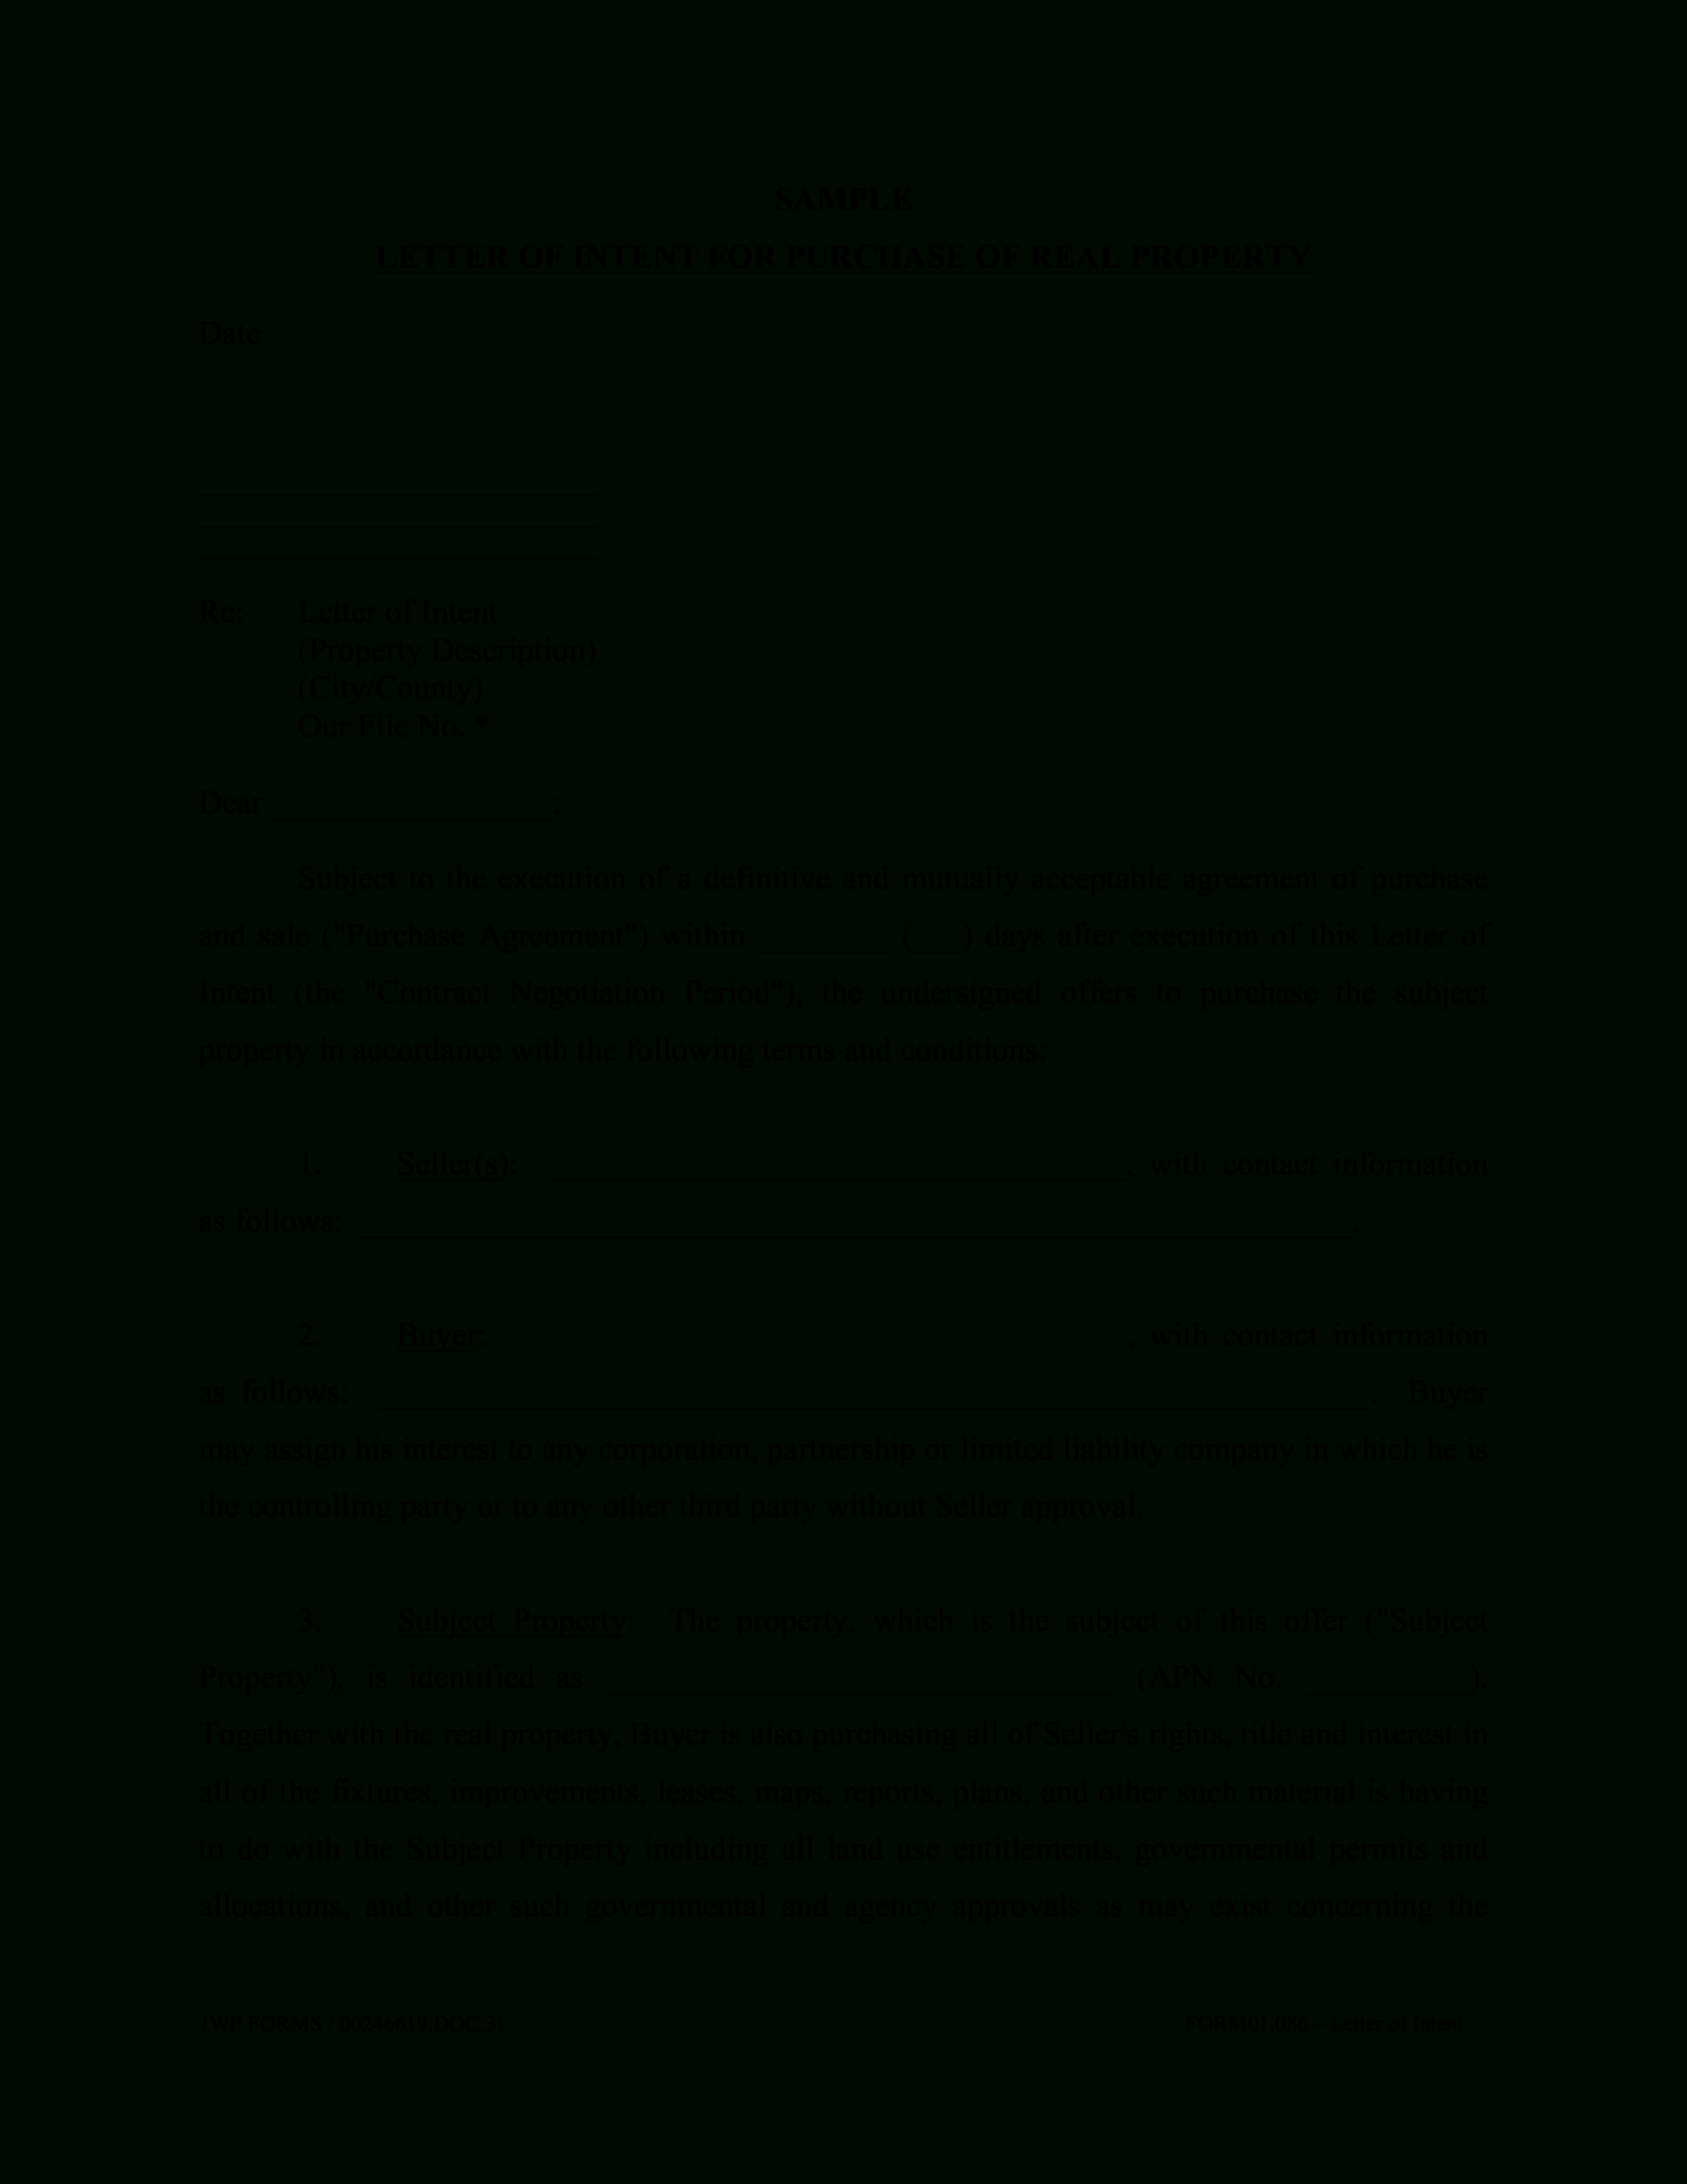 Simple Letter Of Intent For Purchase | Templates At With Letter Of Intent For Real Estate Purchase Template